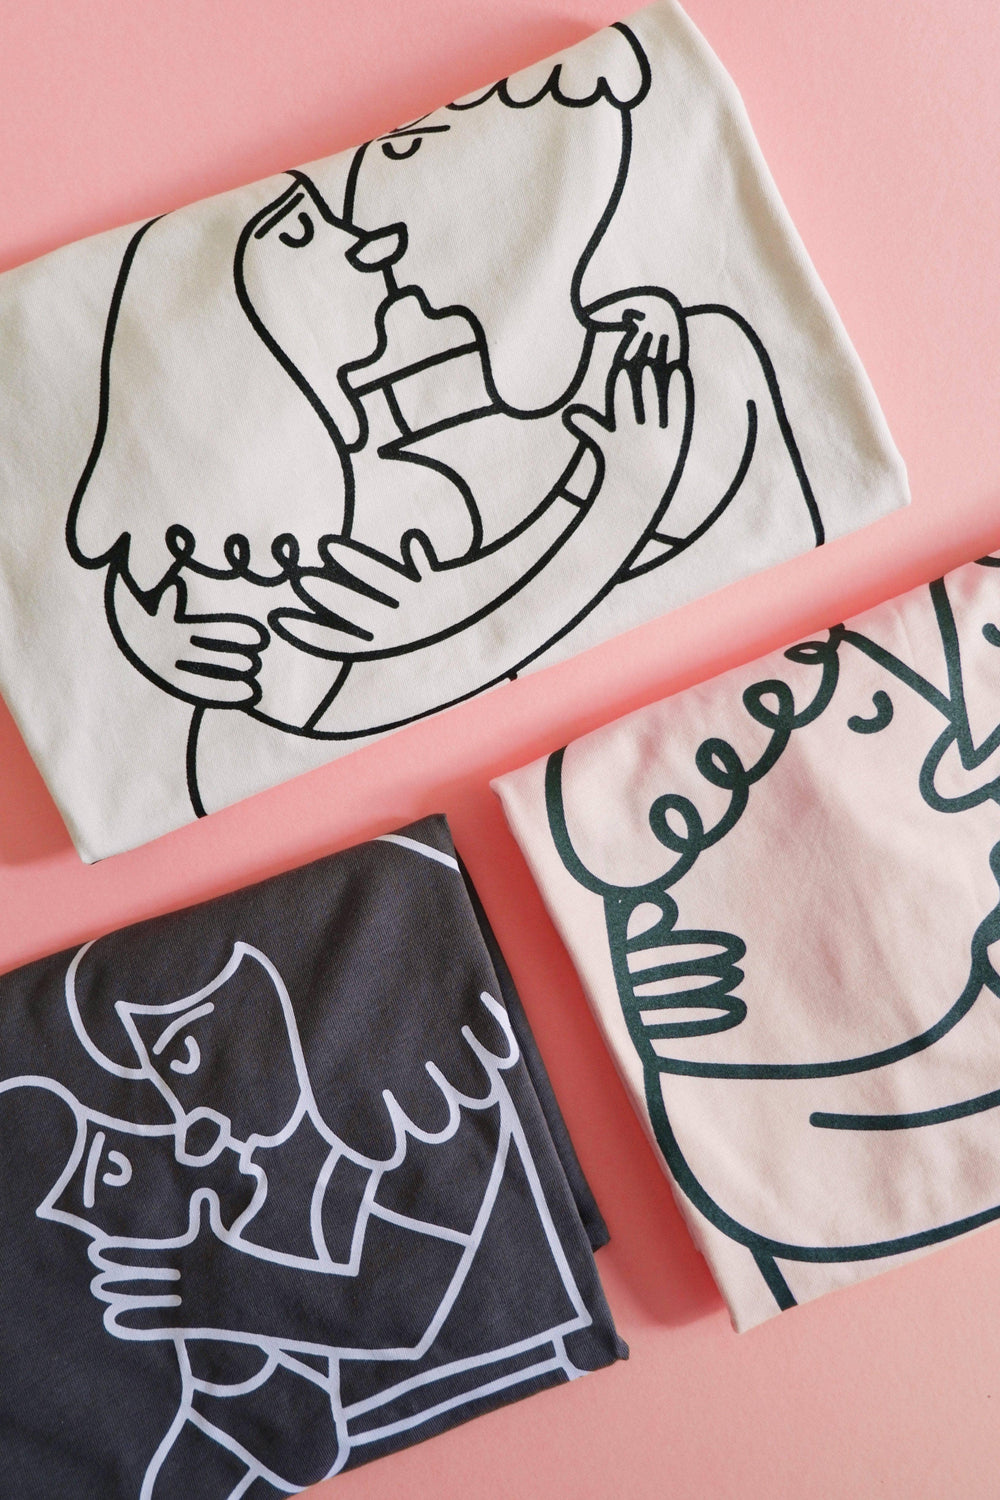 Lucy & Yak TOP 'Edie' Limited Edition Screen Printed T-Shirt By Natalie Byrne